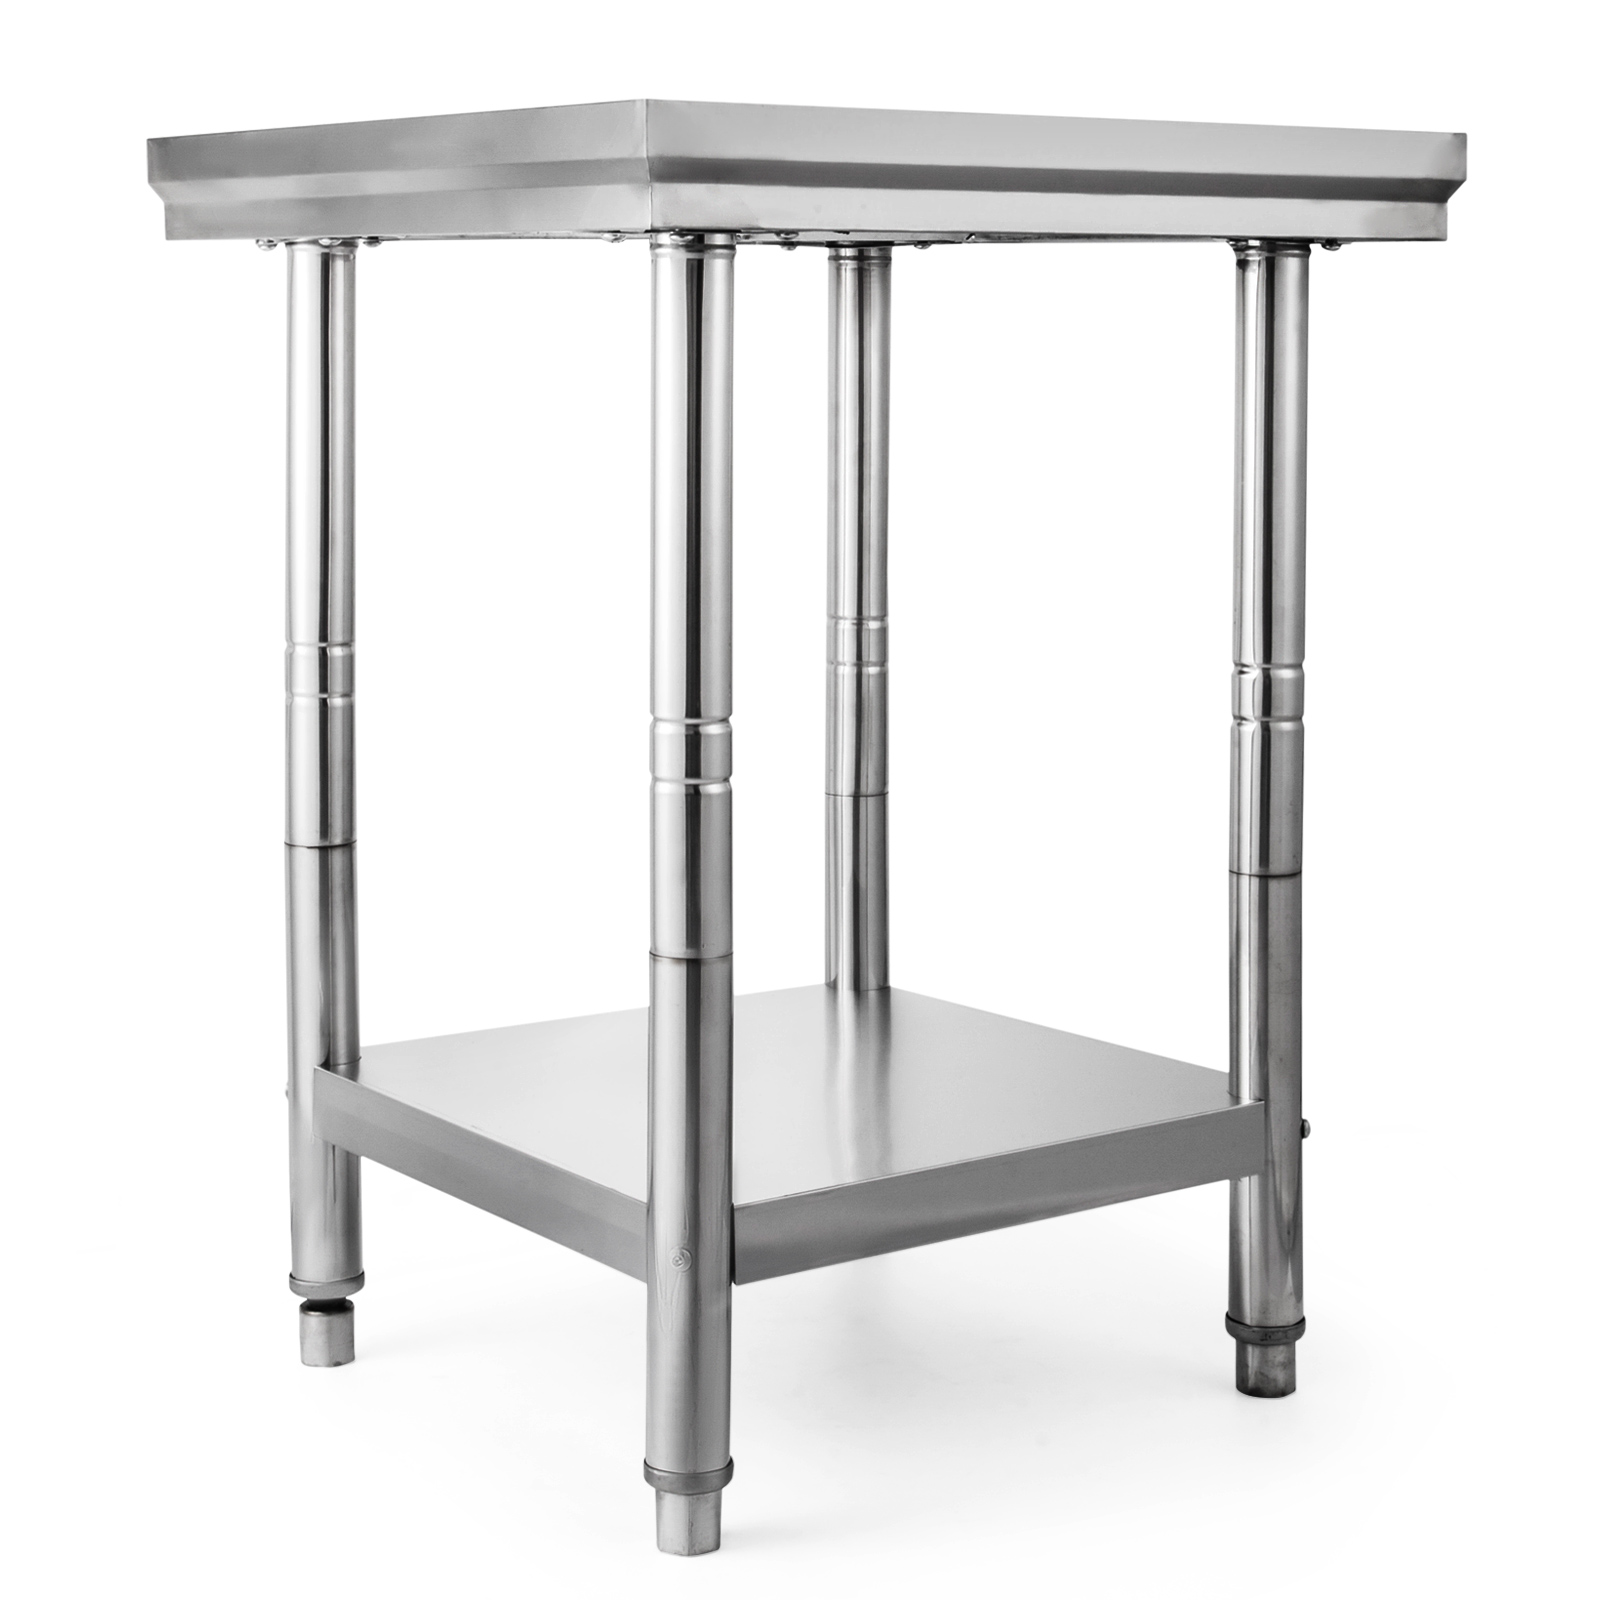 Kitchen Work Table Commercial Catering Bench Food Prep 4 ...